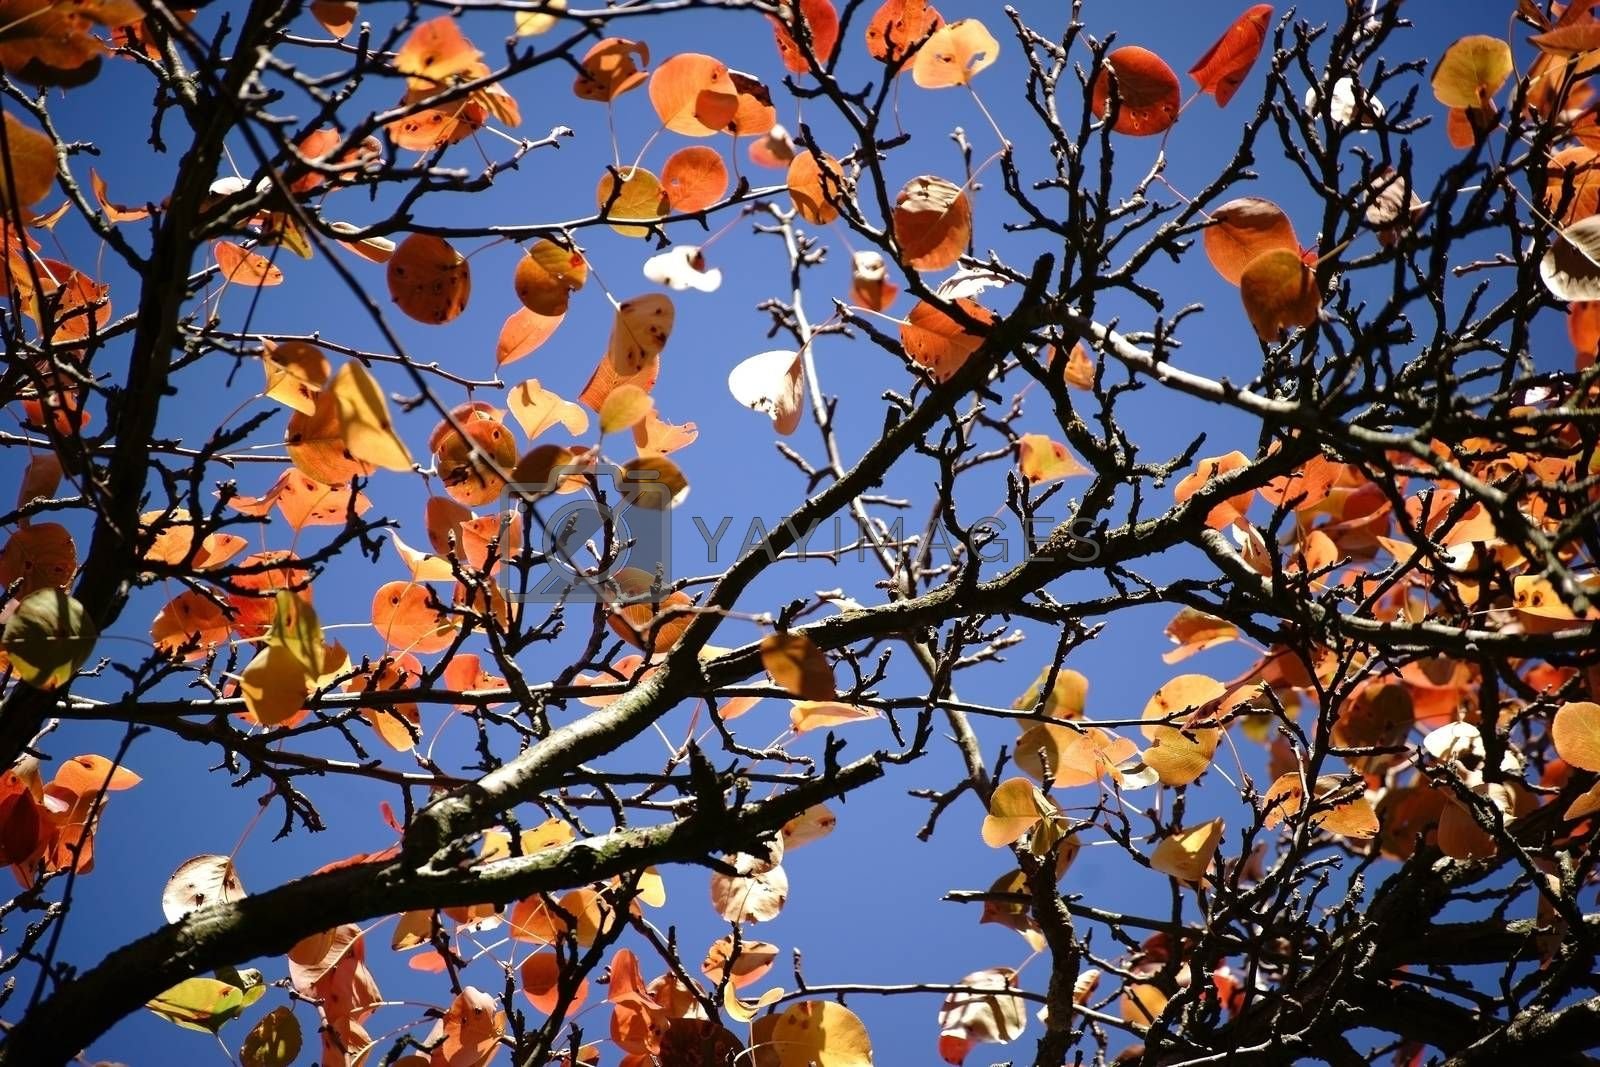 The canopy of a Ussuri pear tree in autumn, Pyrus ussuriensis.